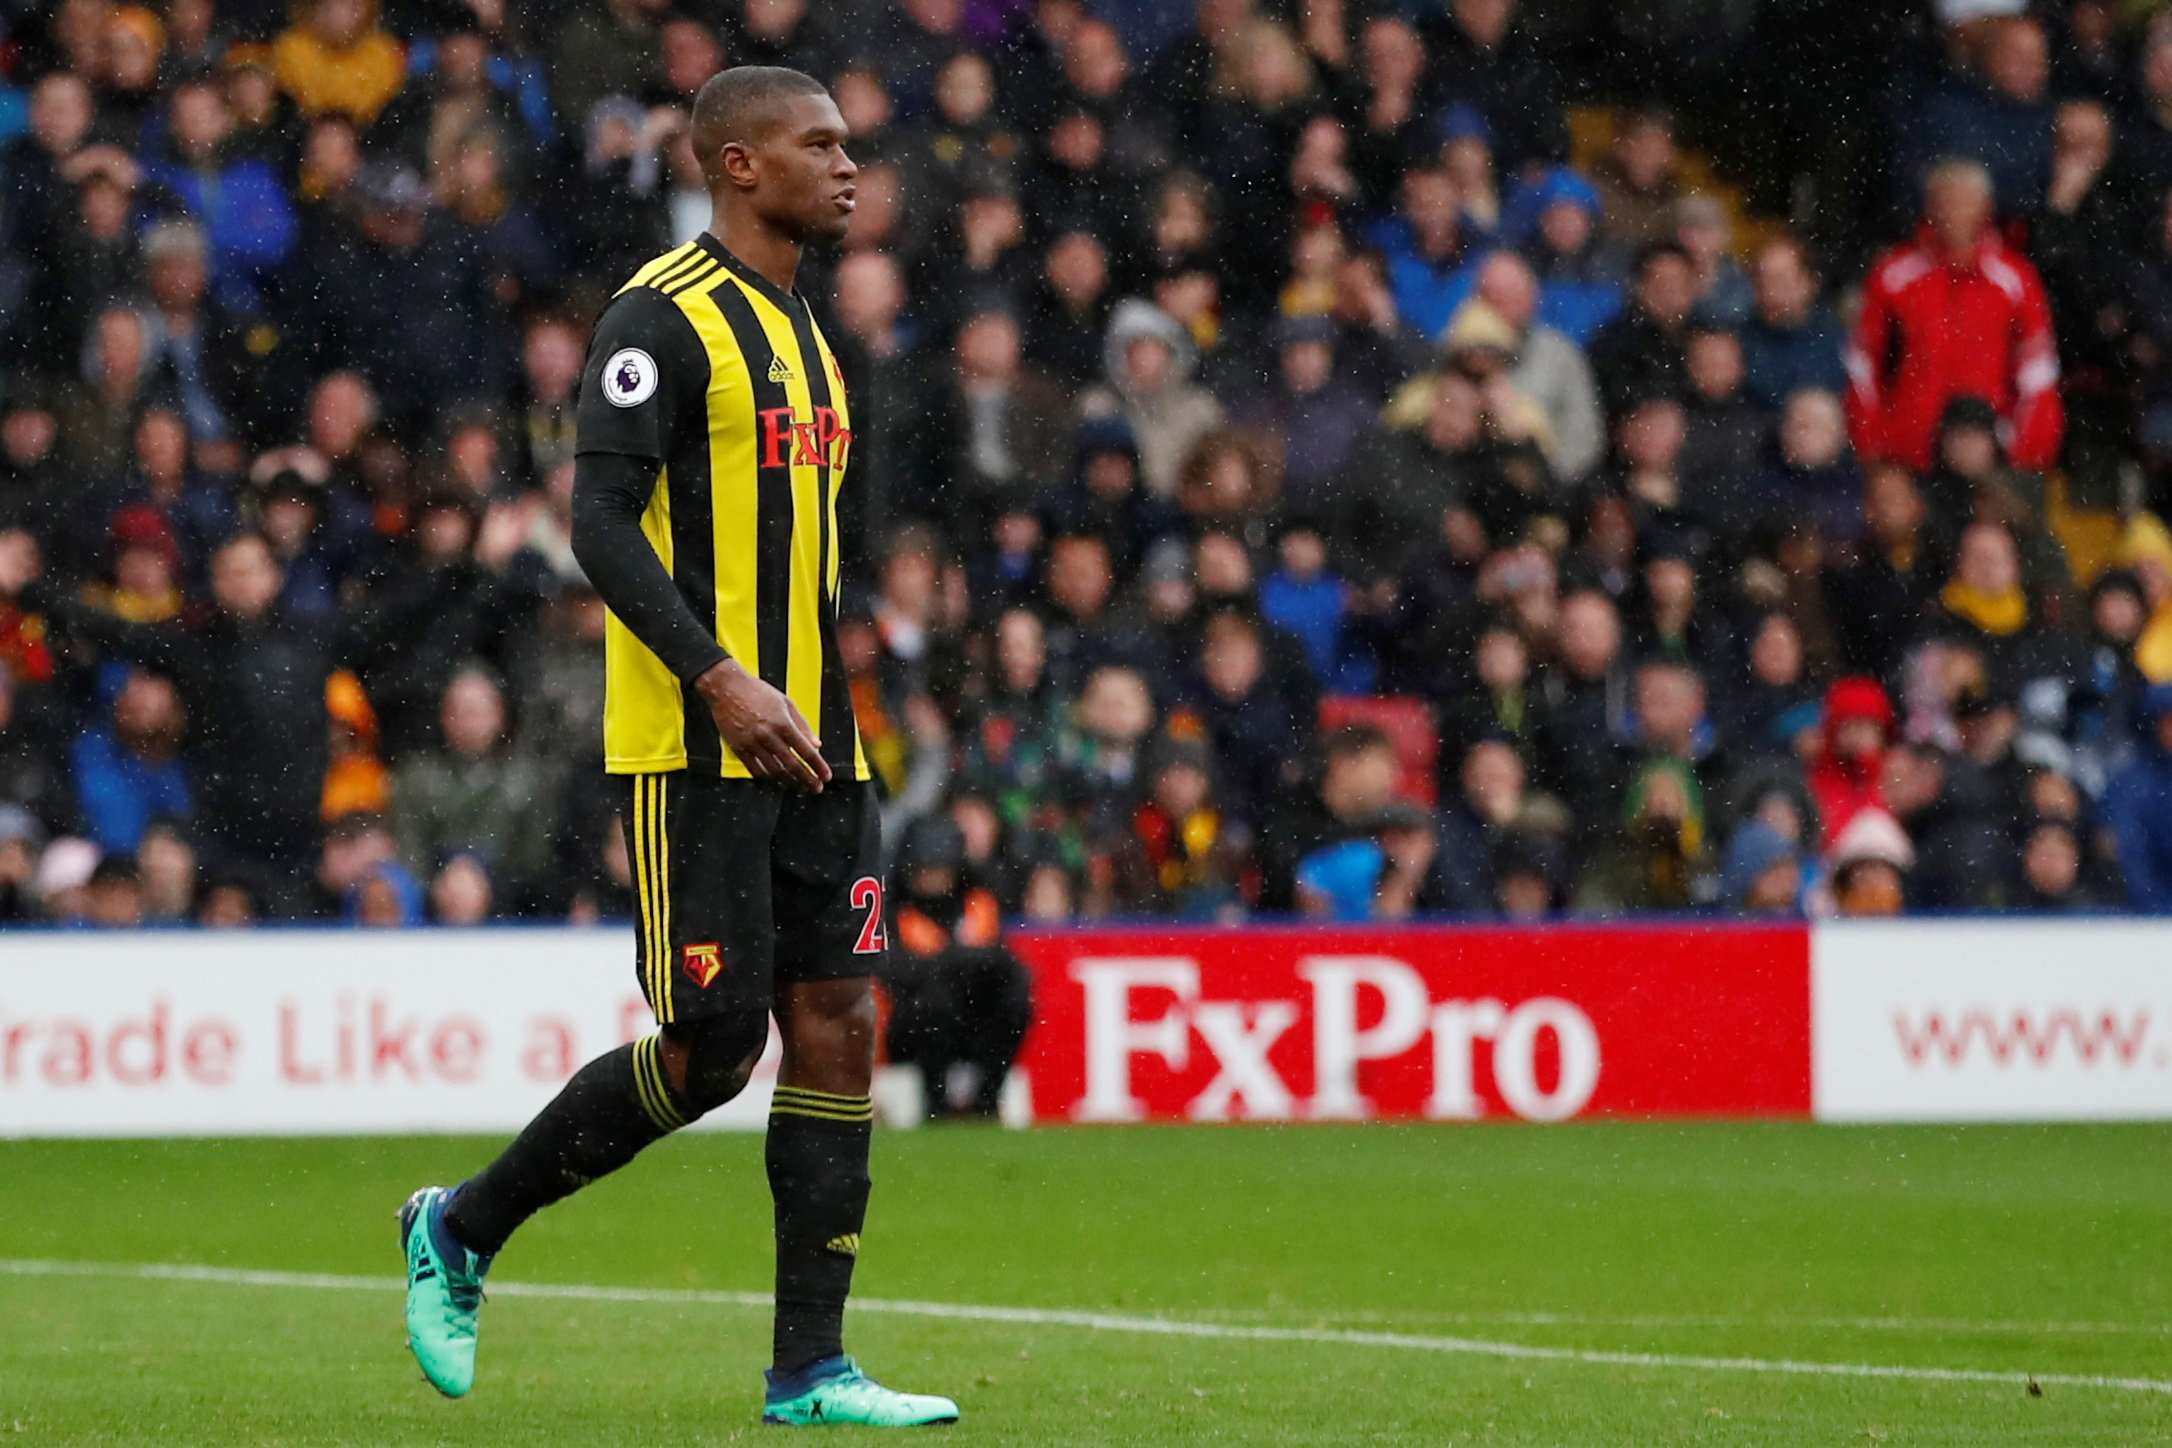 Kabasele speaks out about experiences with racism